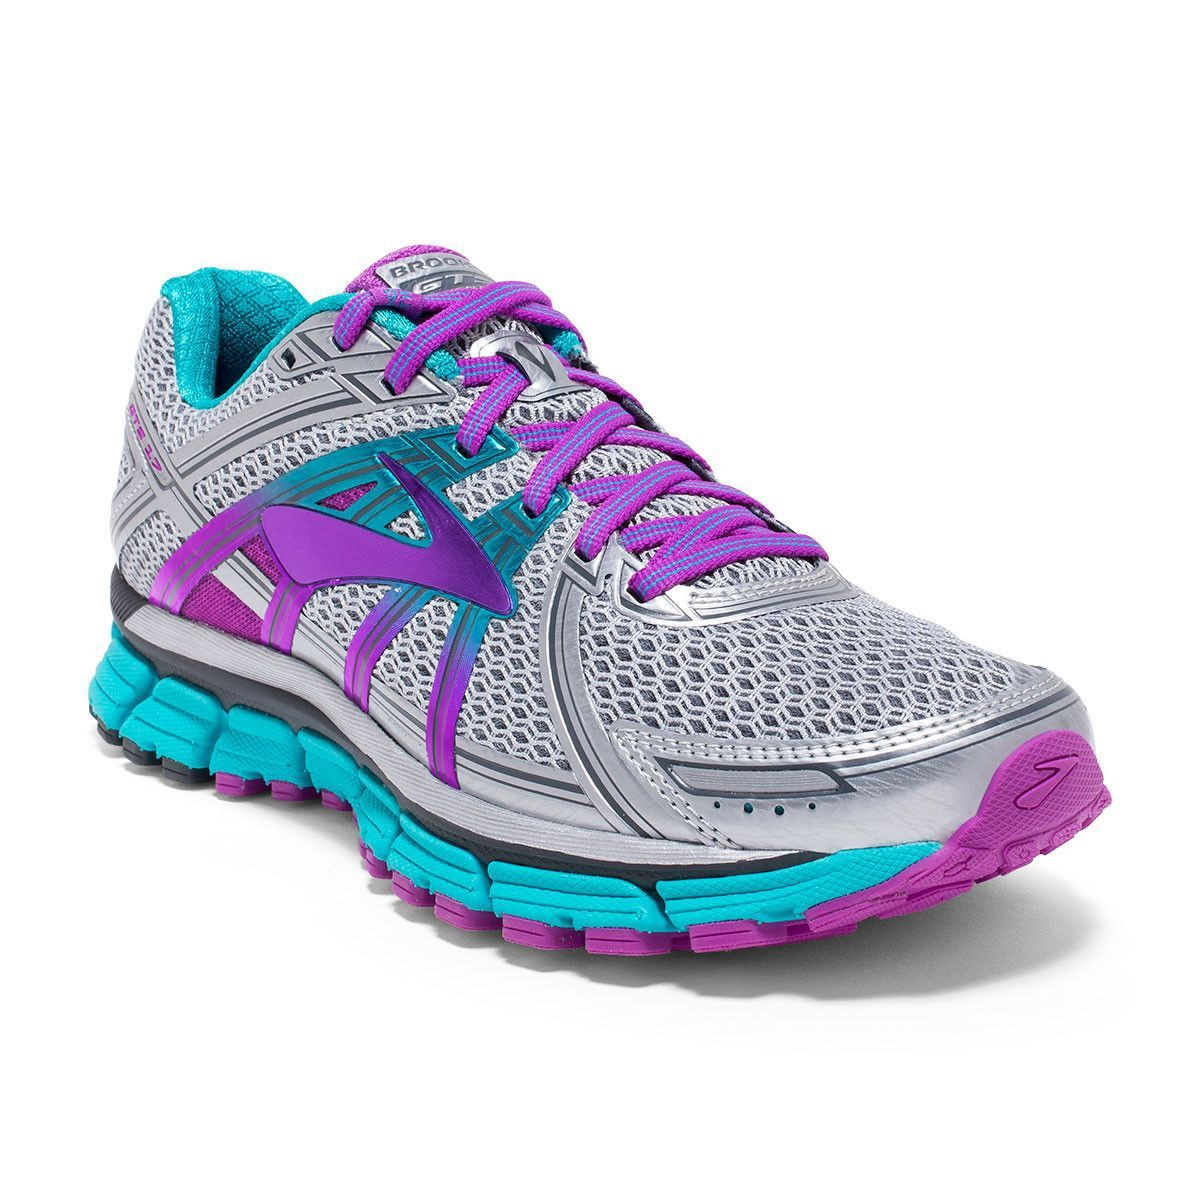 791b9b19dc325 Brooks Women s Adrenaline GTS 17 Wide Silver Purple Cactus Flower Bluebird Running  Shoe 8 Wide Women US  Stay on top of your stride with the perfect balance  ...